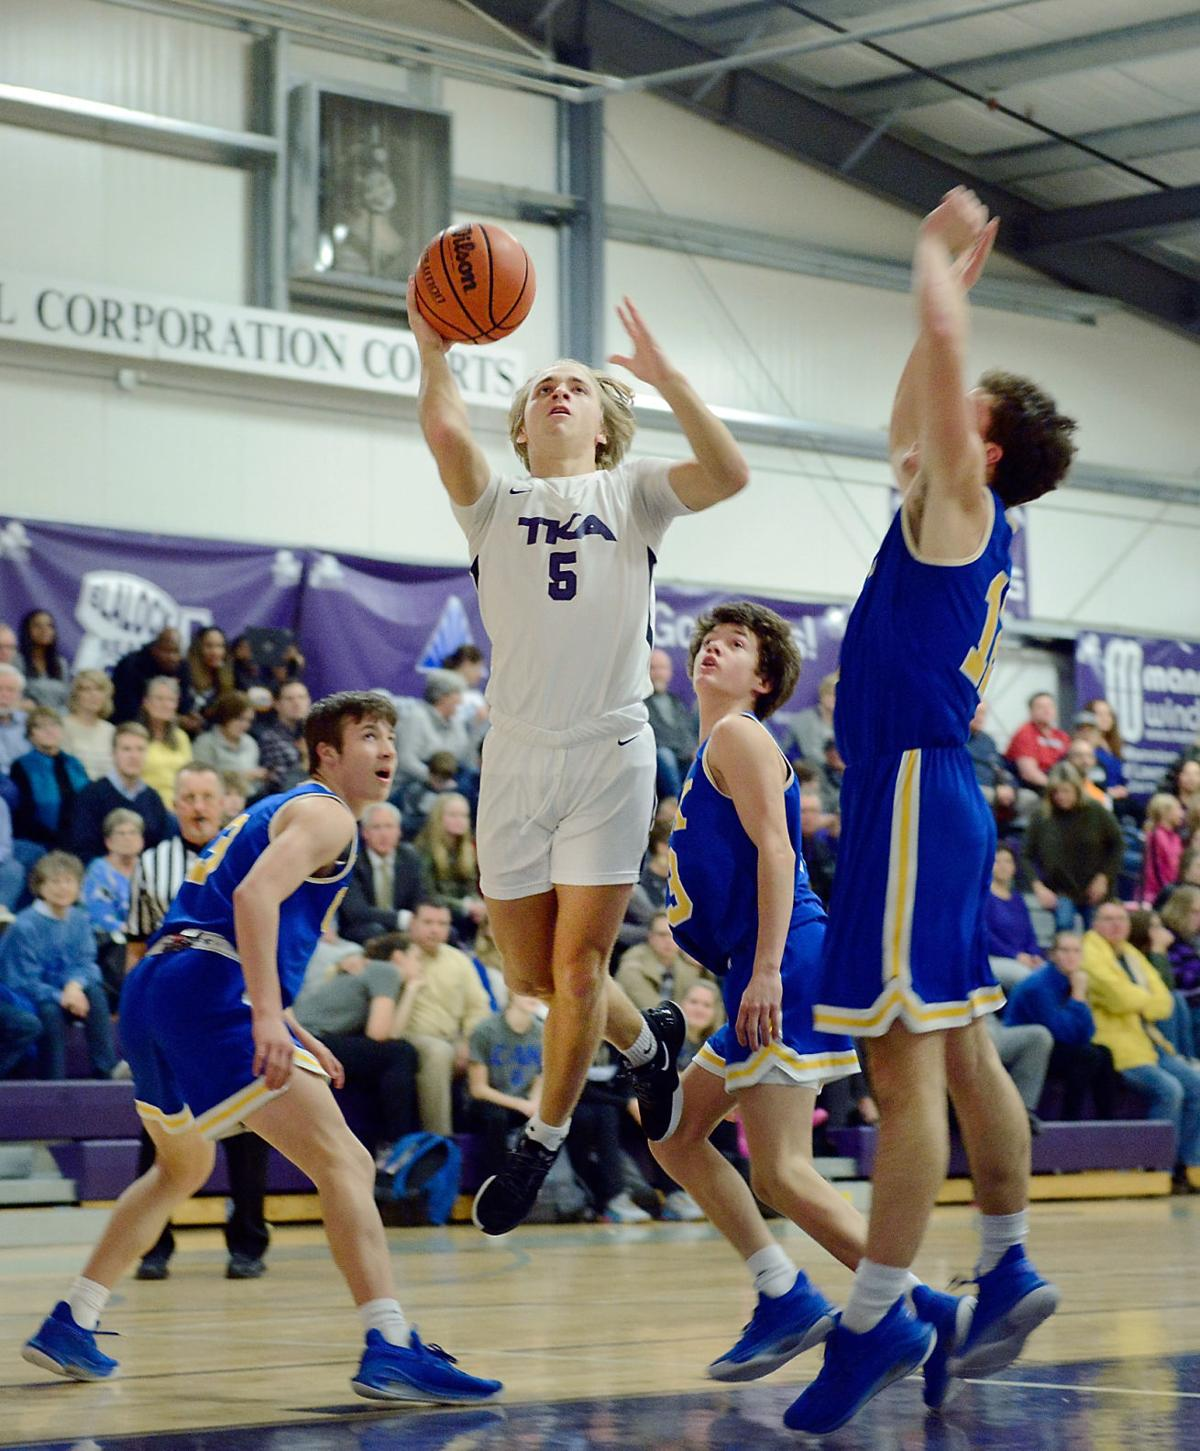 BBALL: TKA's Zack Tilley vs CAK